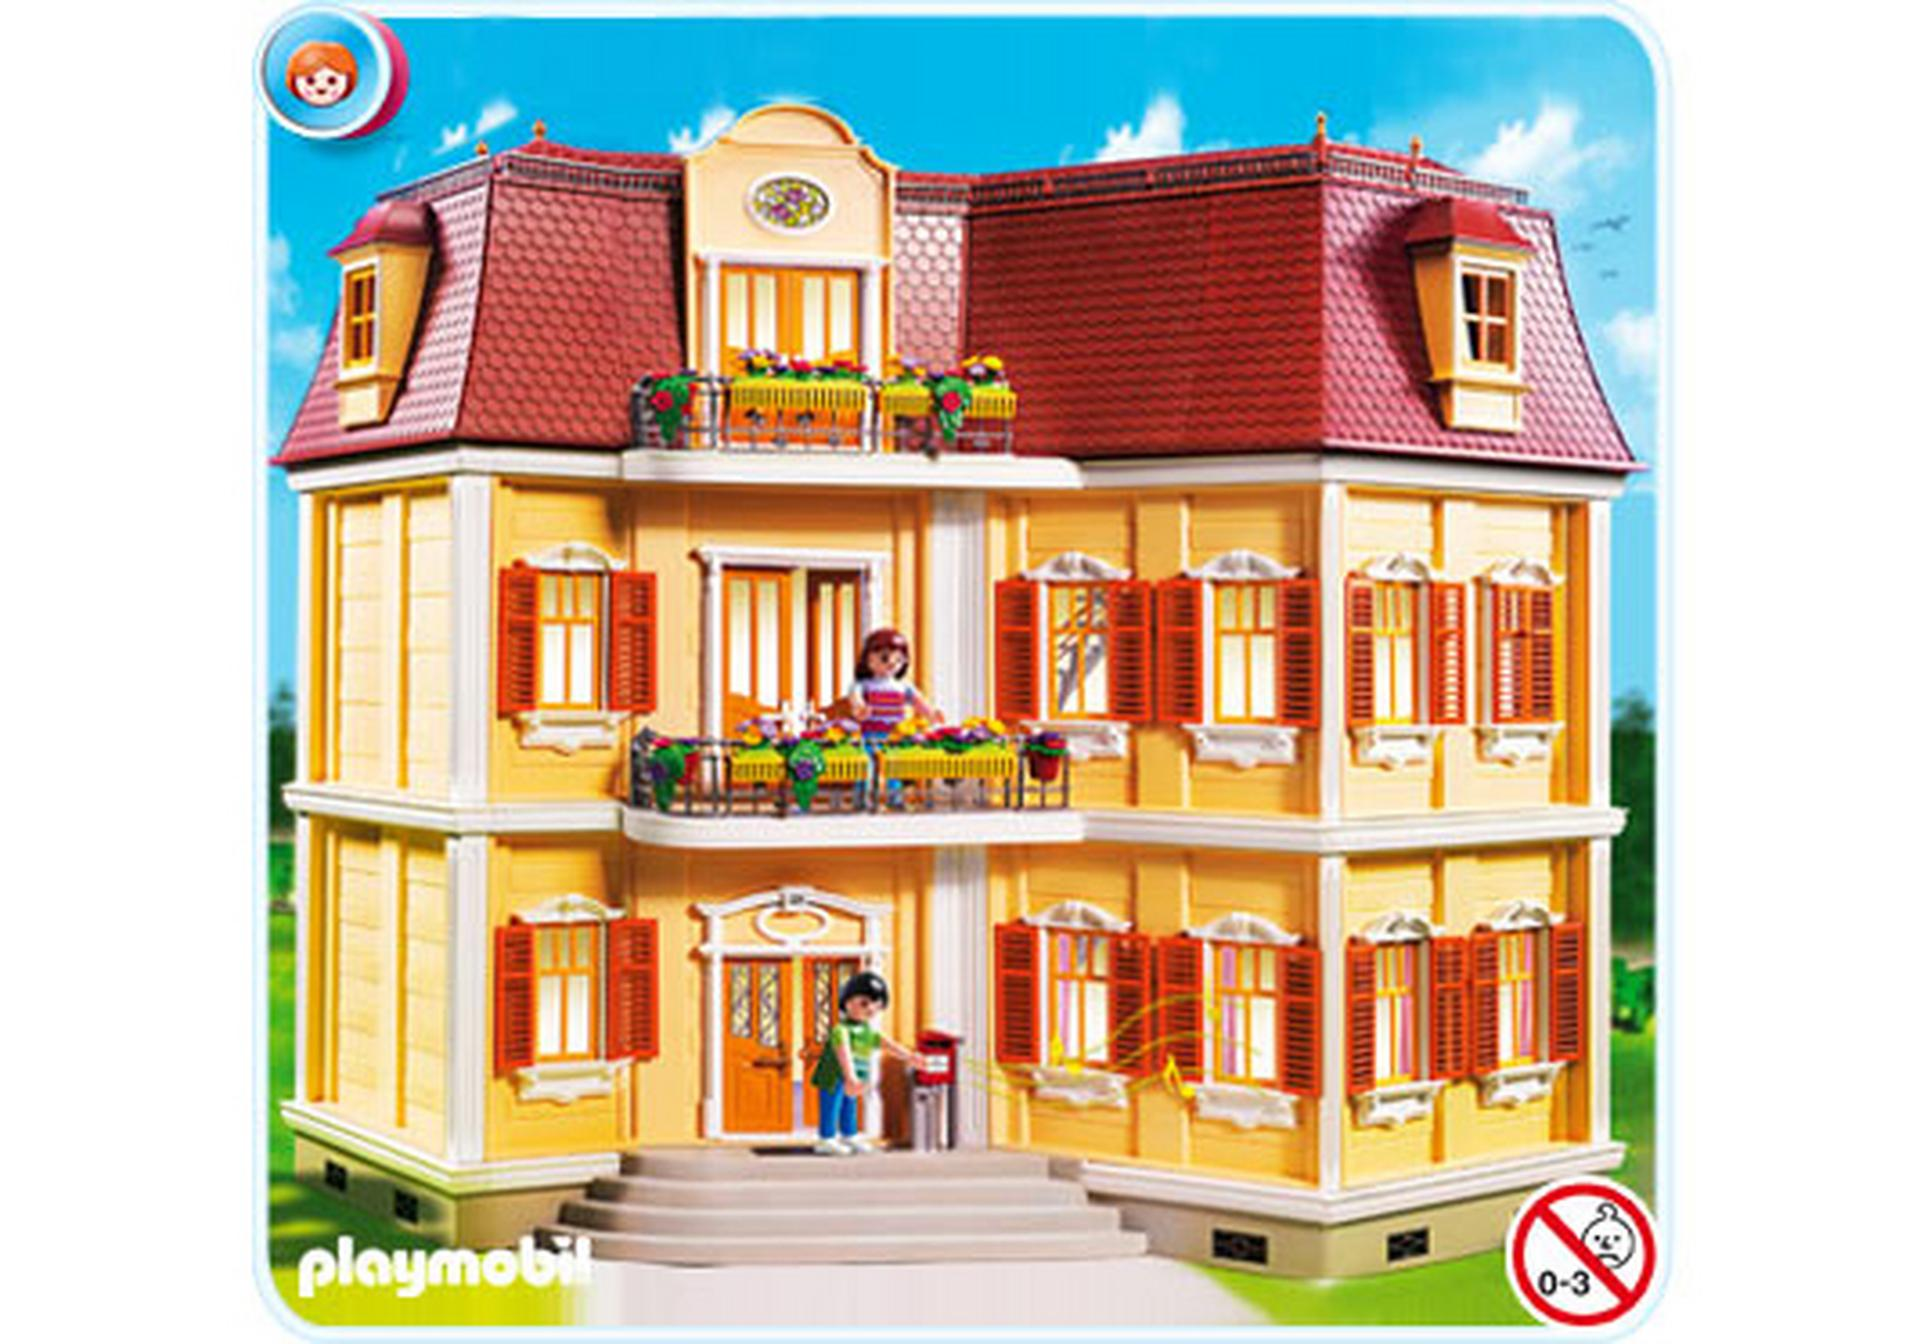 Maison de ville 5302 a playmobil france for Plans de maison de ville